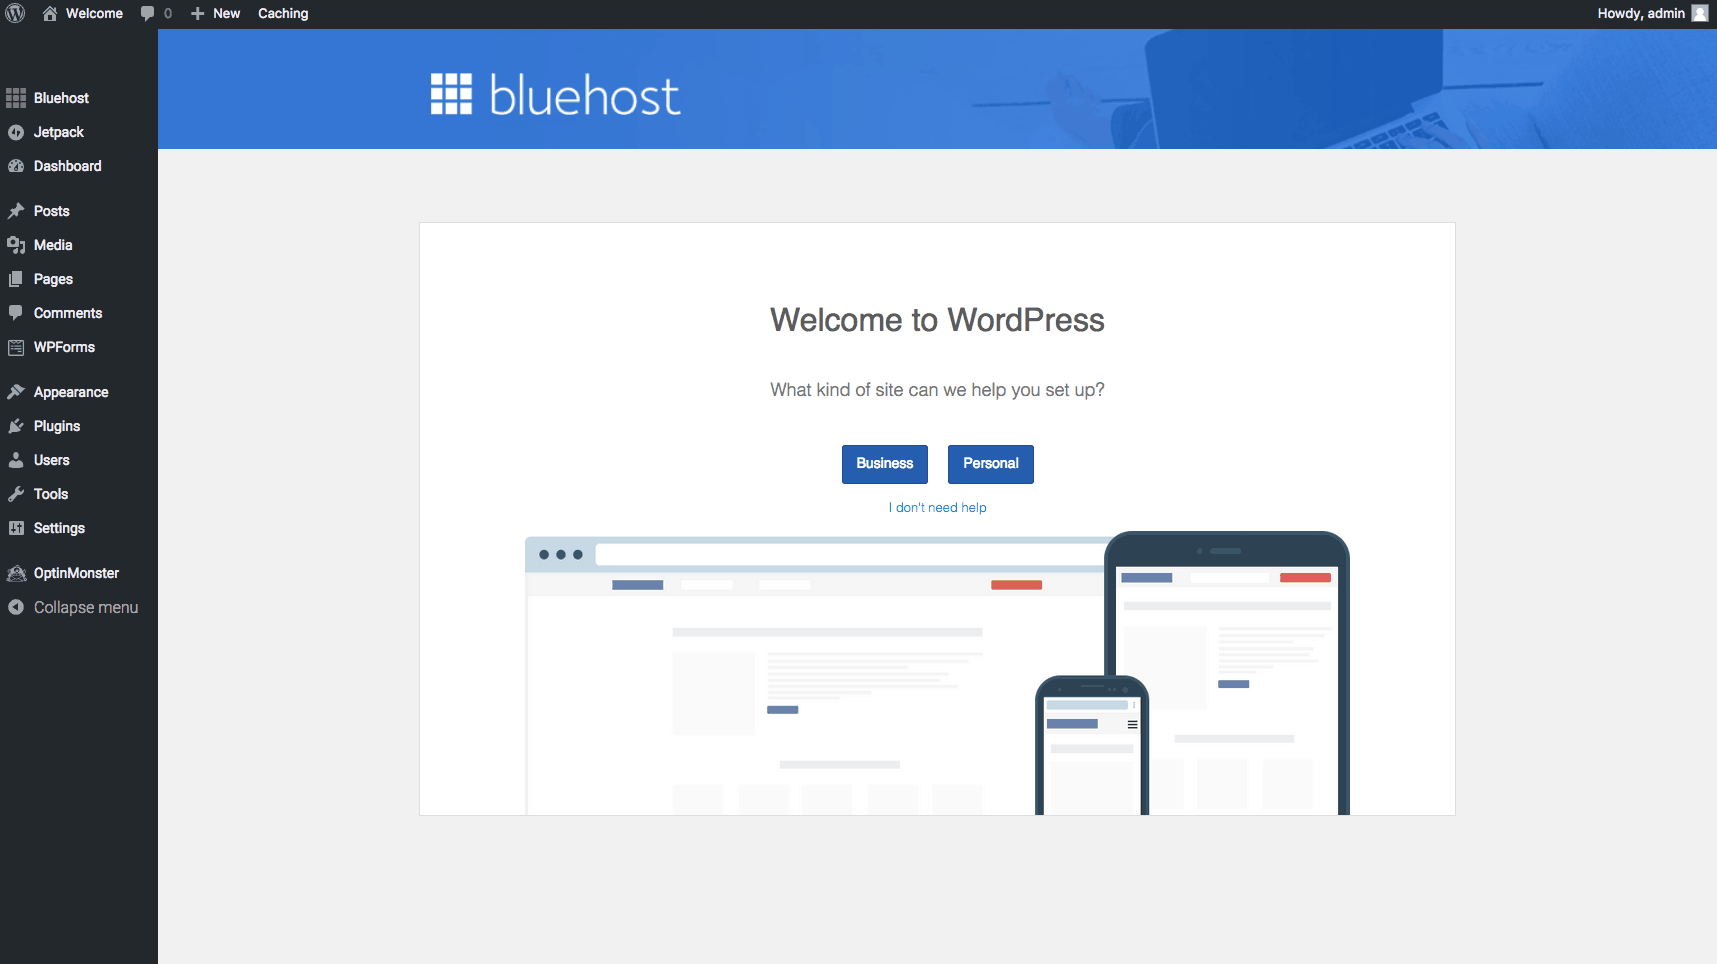 Bluehost Custom WordPress Dashboard